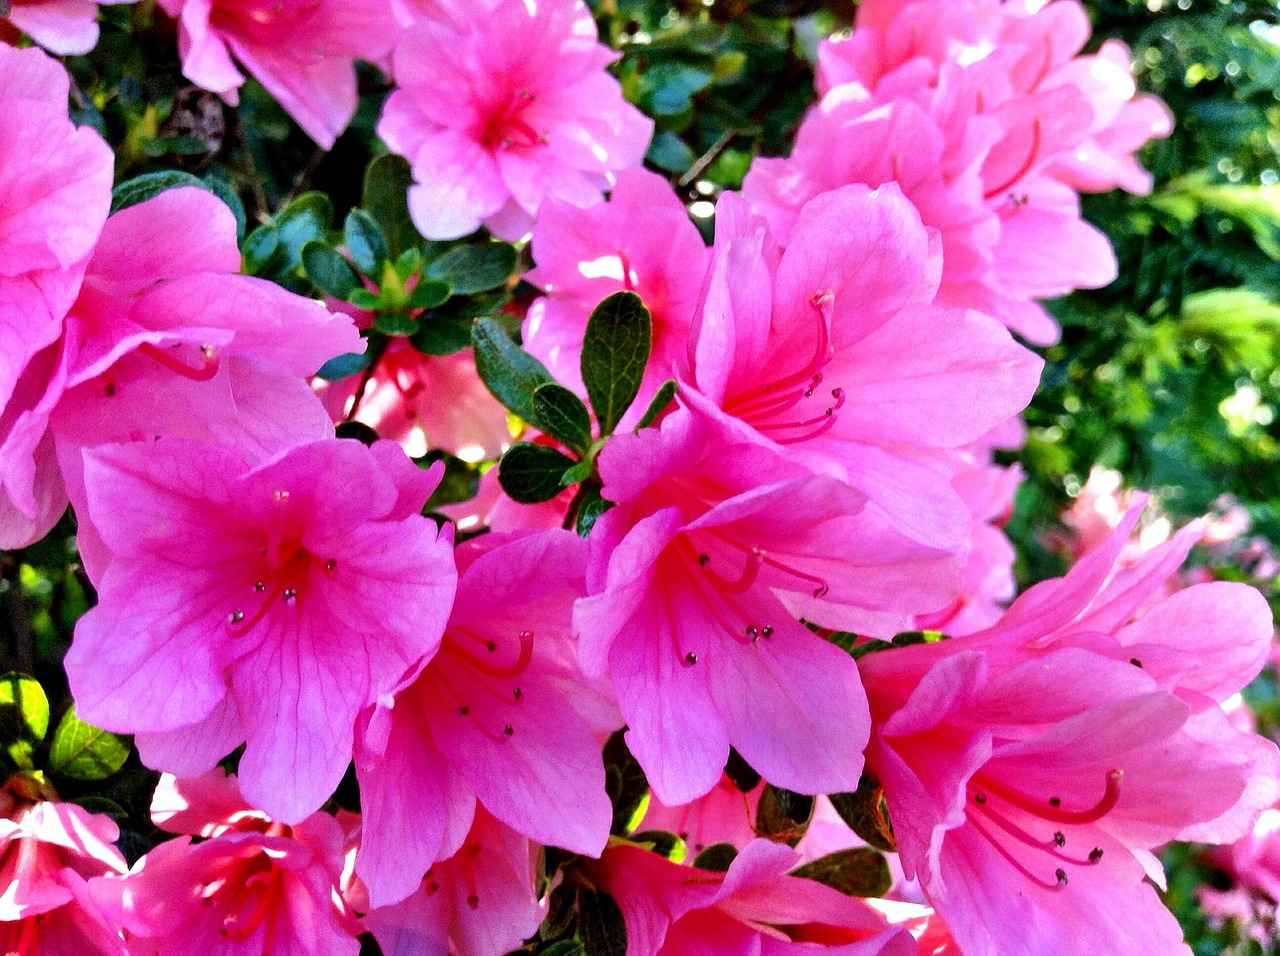 A close up of a bunch of pink flowers